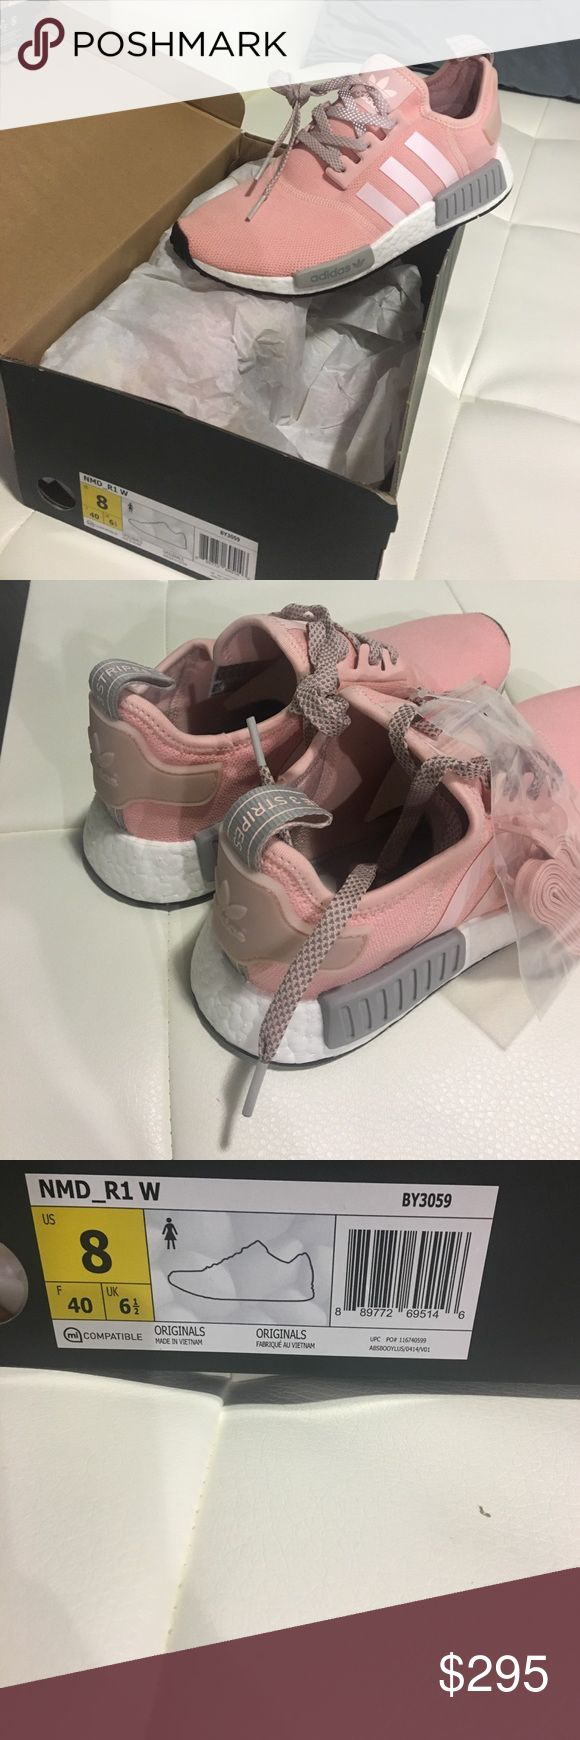 Women's Adidas NMD R1 BY3059 Light Pink Grey Brand New in Box Adidas NMD R1 size 8. Light Pink/ Grey colors 100% Authentic. If you own a pair you are aware they run about 1/2 size big depending on your foot width. I normally wear a size 8.5 in sneakers, but an 8 in these. If interested in another size, let me know I may be able to possibly find your size. Thanks for looking, I bundle 👗🎀🛍 Adidas Shoes Sneakers